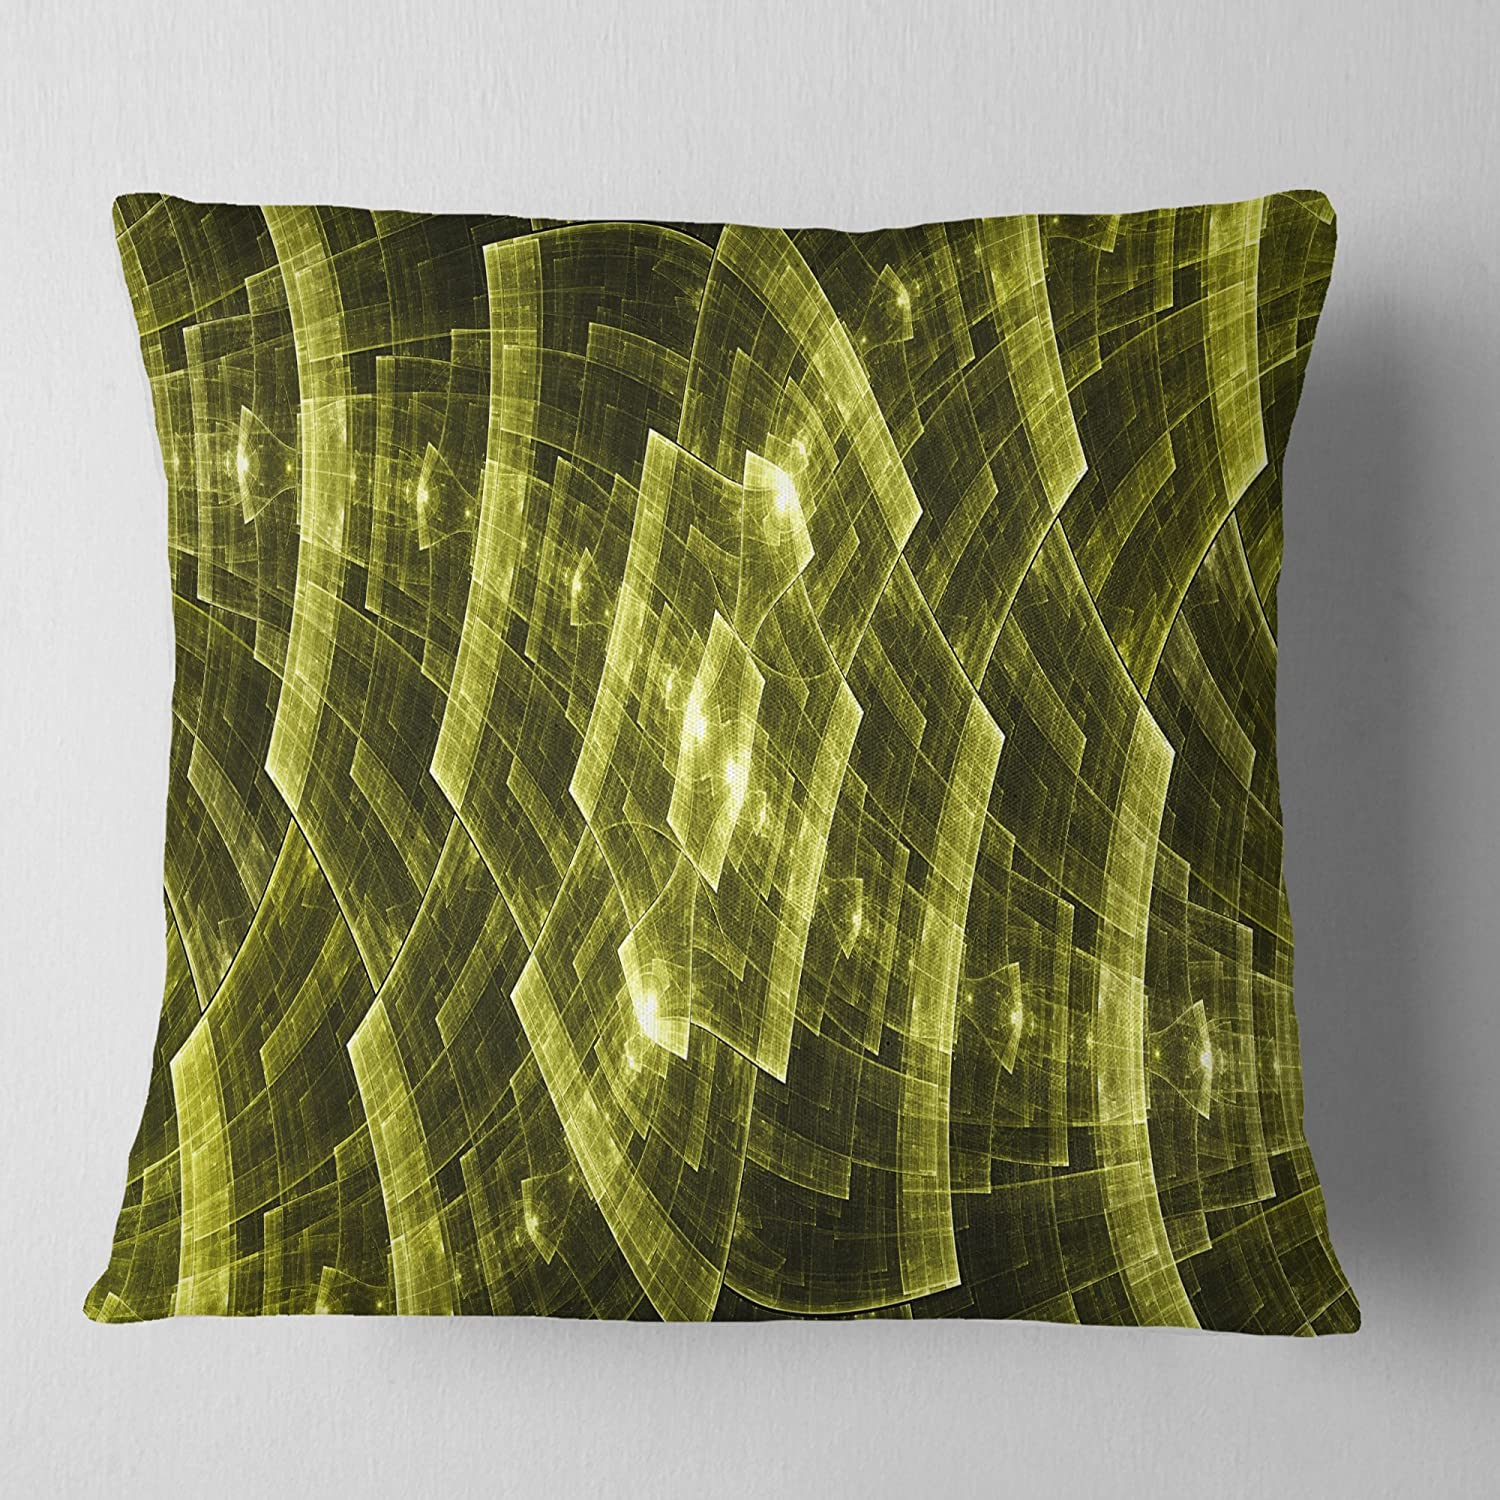 Sofa Throw Pillow 18 in Insert Printed On Both Side Designart CU11961-18-18 Bright Yellow Fractal Flower Grid Abstract Cushion Cover for Living Room x 18 in in